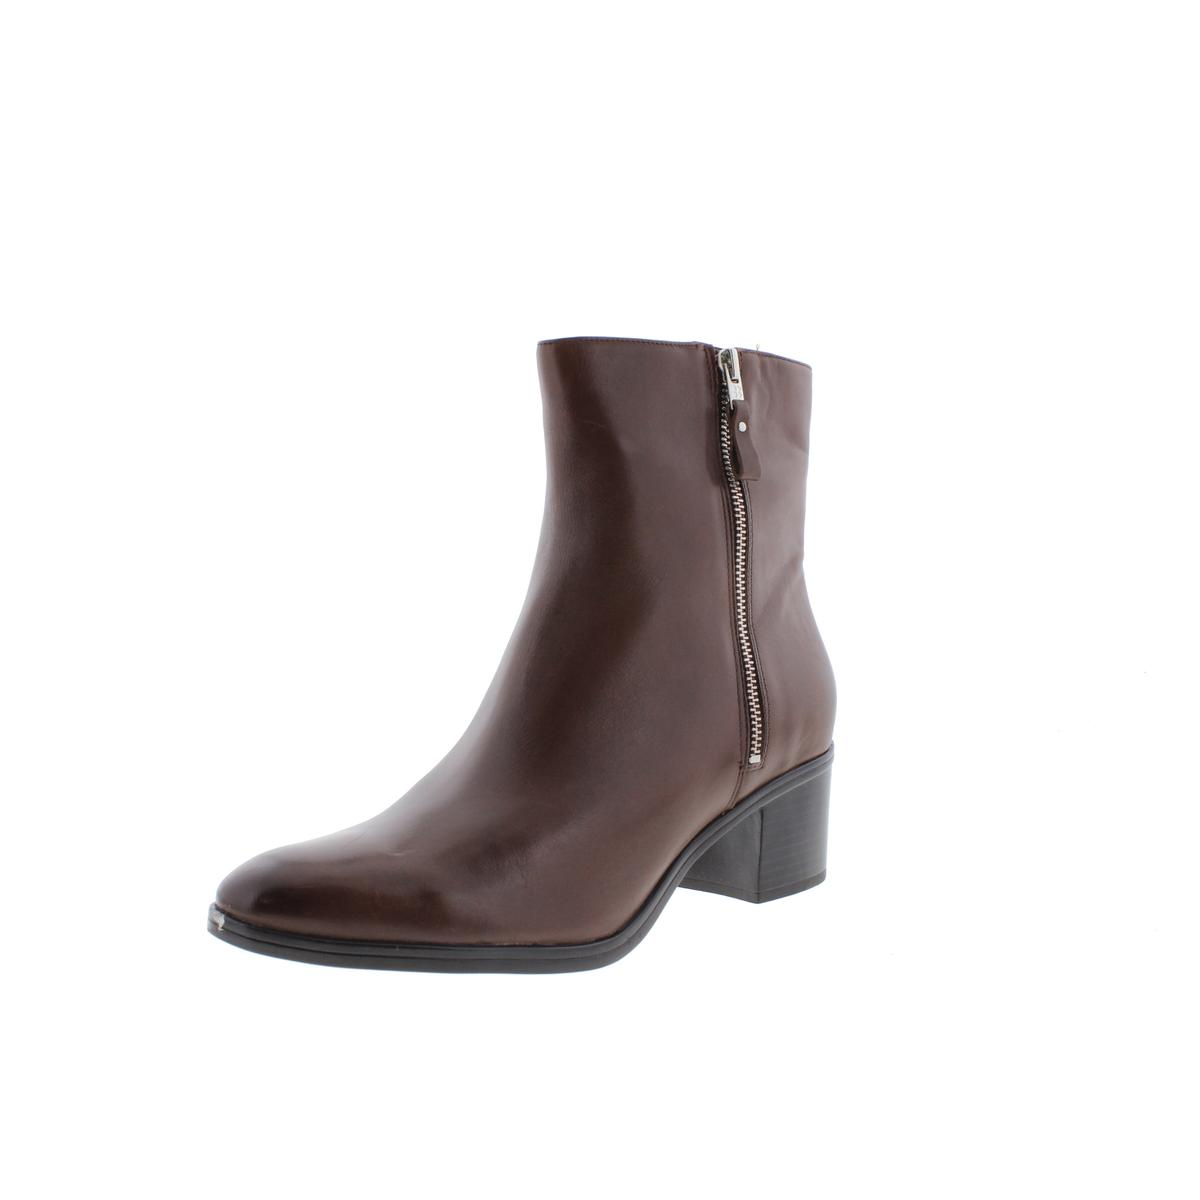 Naturalizer Womens Harding Zipper Heels Ankle Boots by Naturalizer